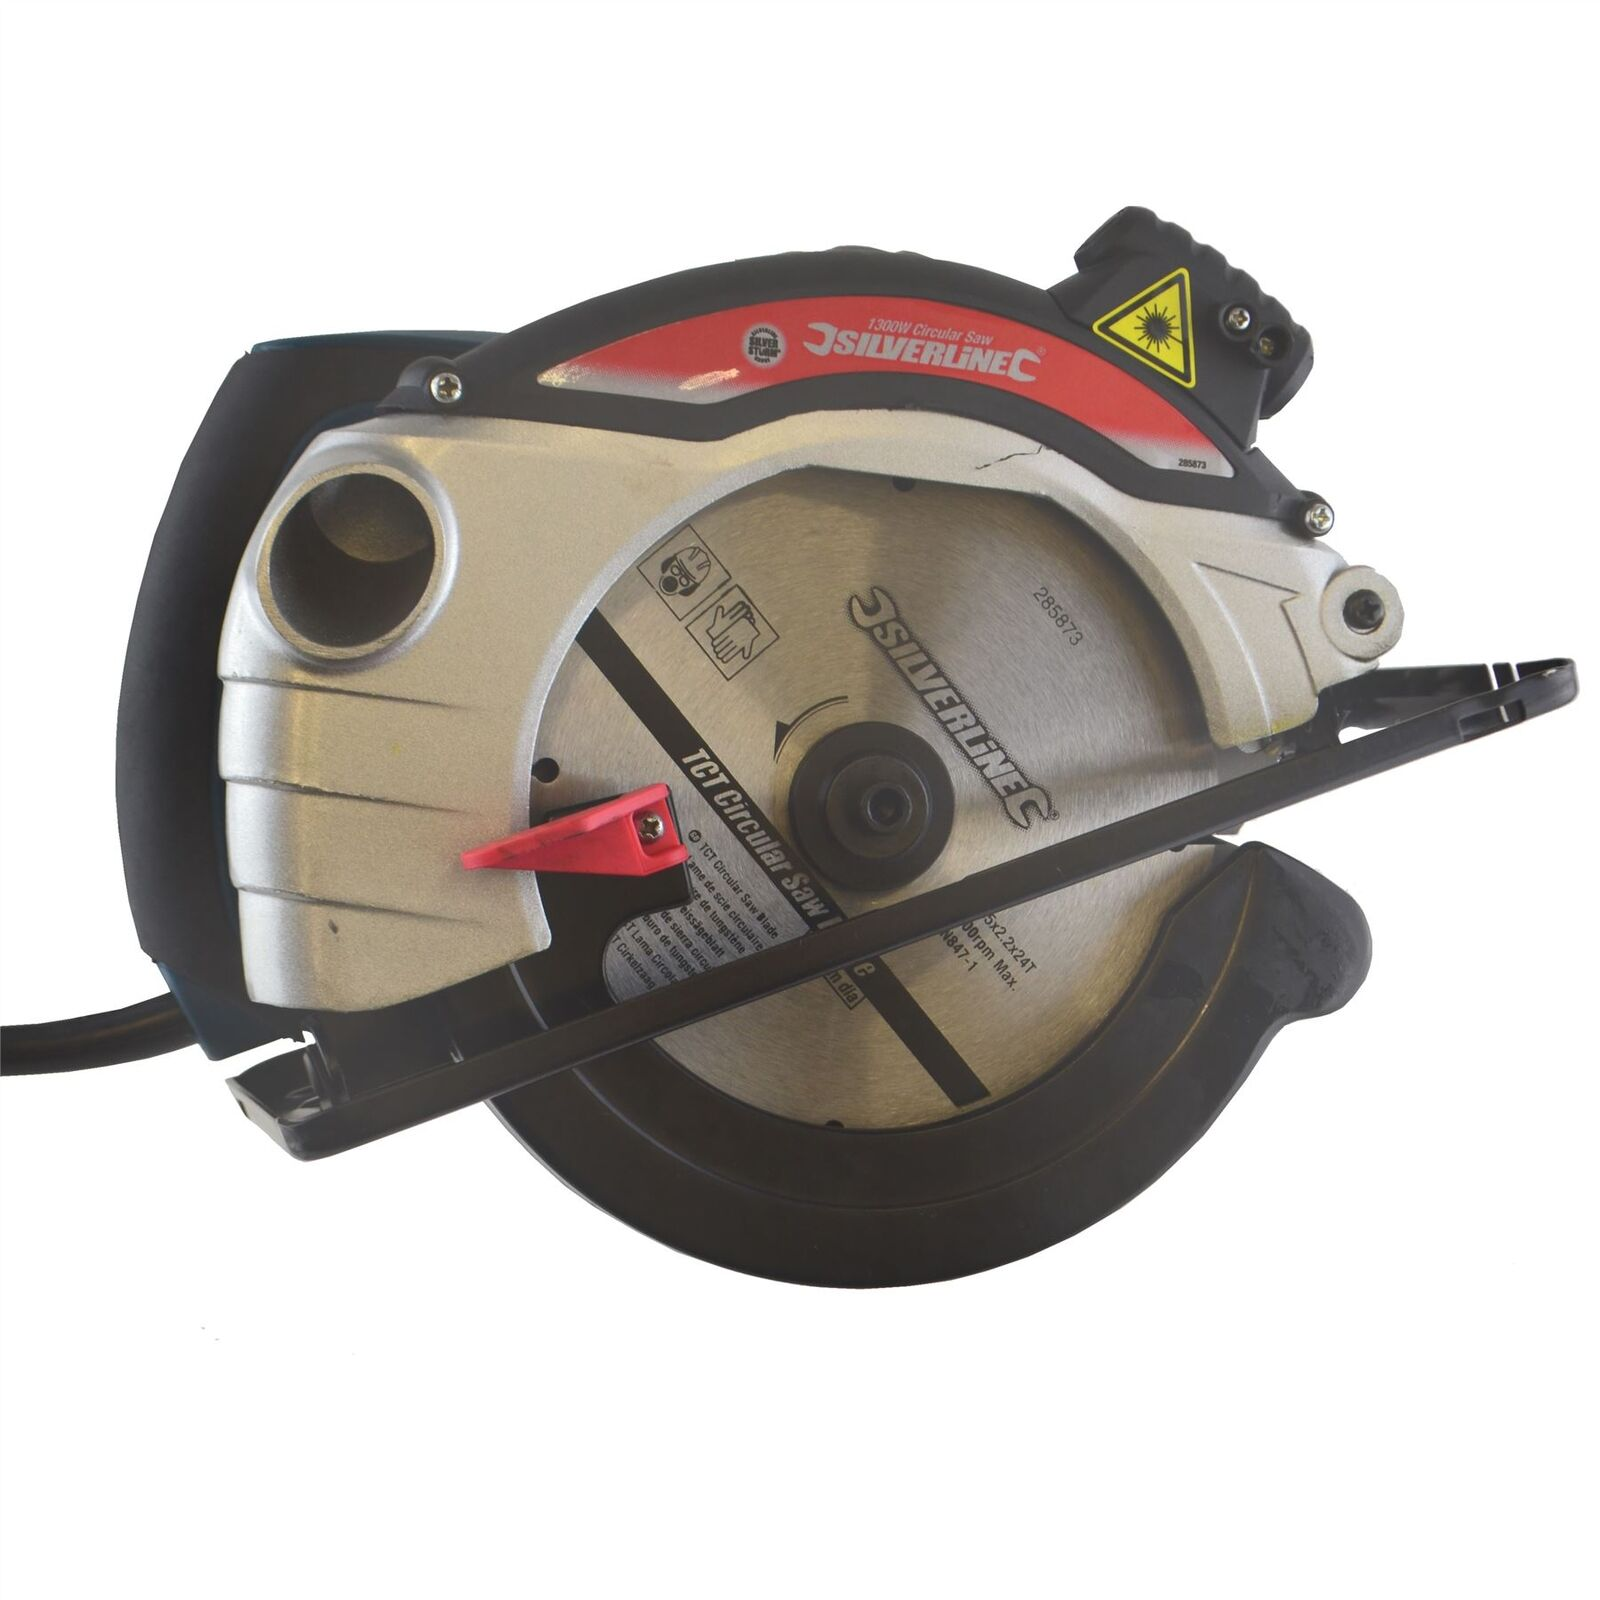 1400w Scie circulaire 185mm - Guide Laser coupe longitudinale lame Woodwork Ele